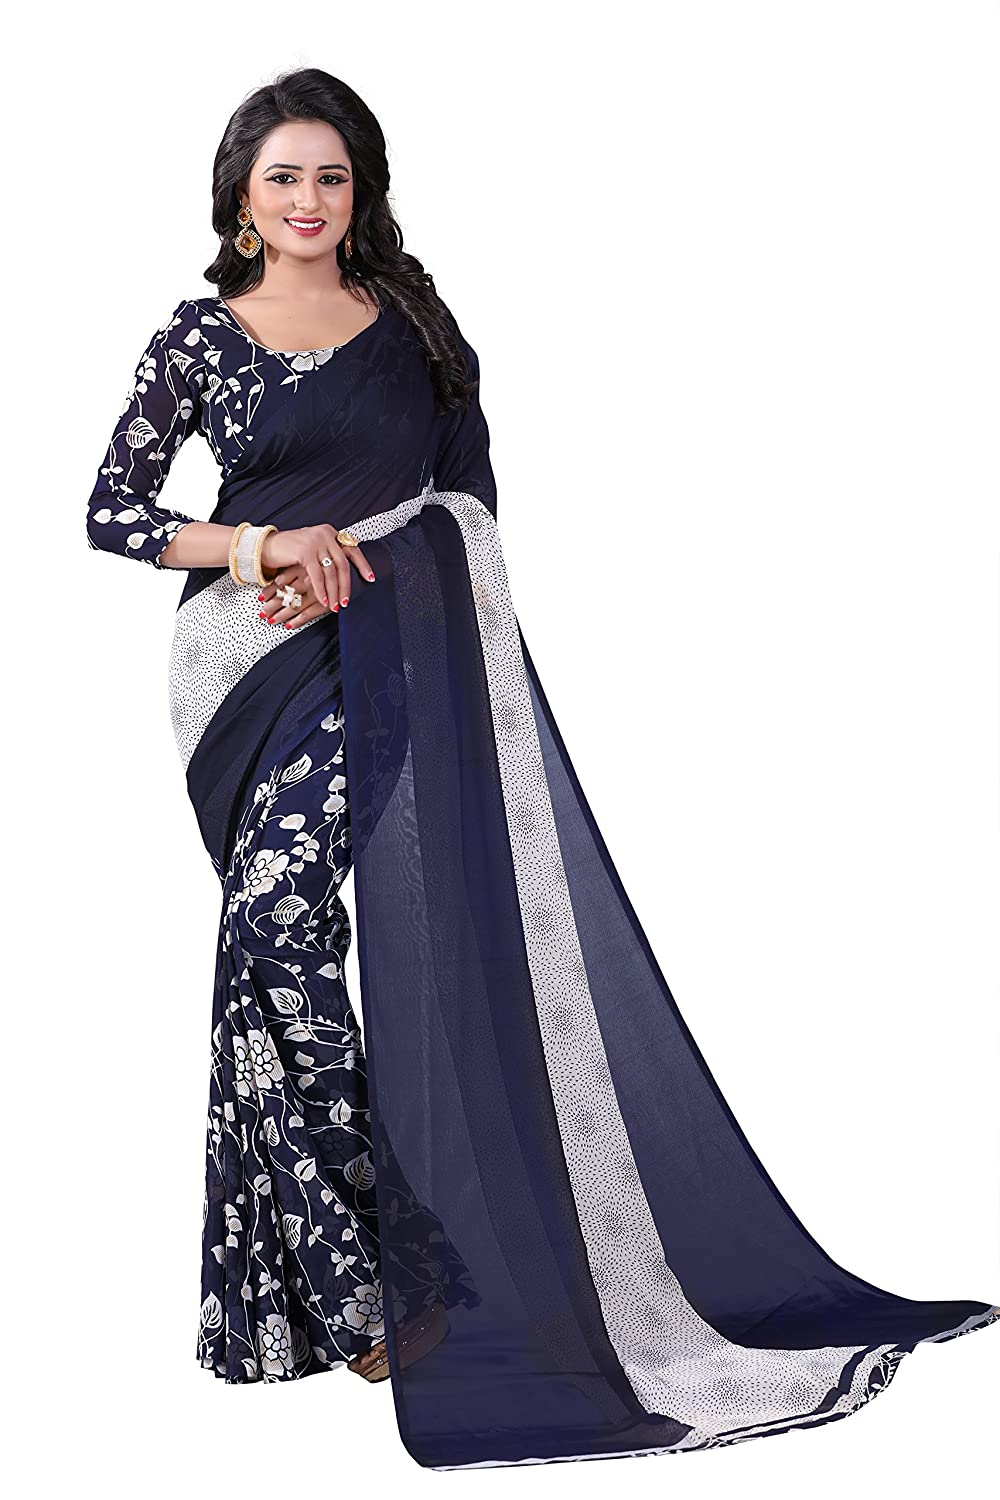 551070e808 Saree For Women Party Wear Half Sarees Offer Designer Below 500 Rupees  Latest Design Under 300 Combo Art Silk New Collection 2018-2019 In Latest  With ...